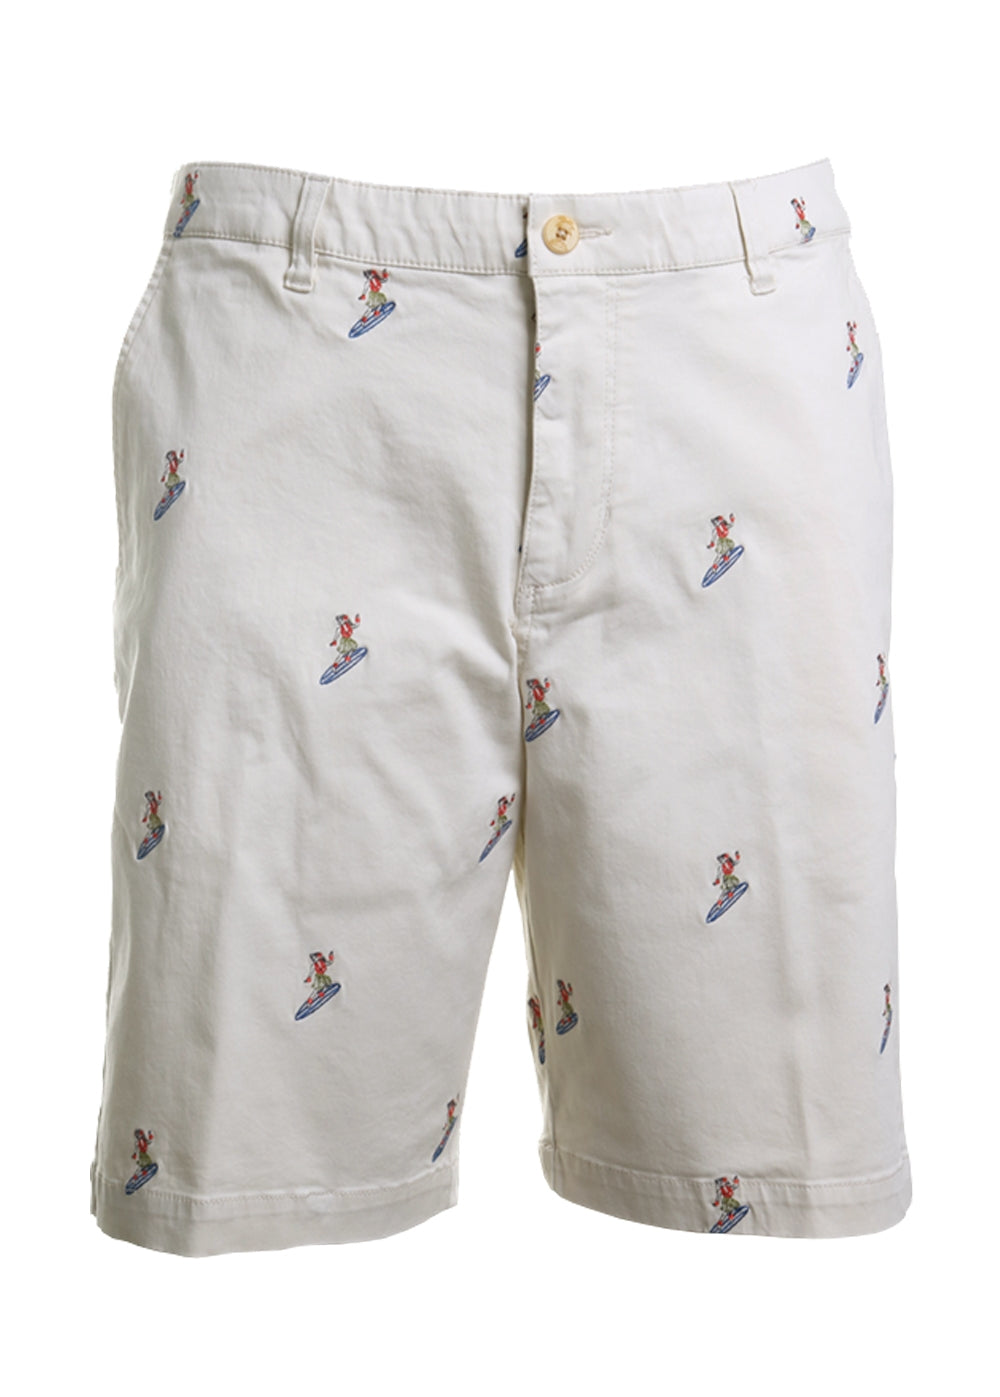 Tommy Bahama Hula Surfin' Stretch Sateen Shorts in Bleached